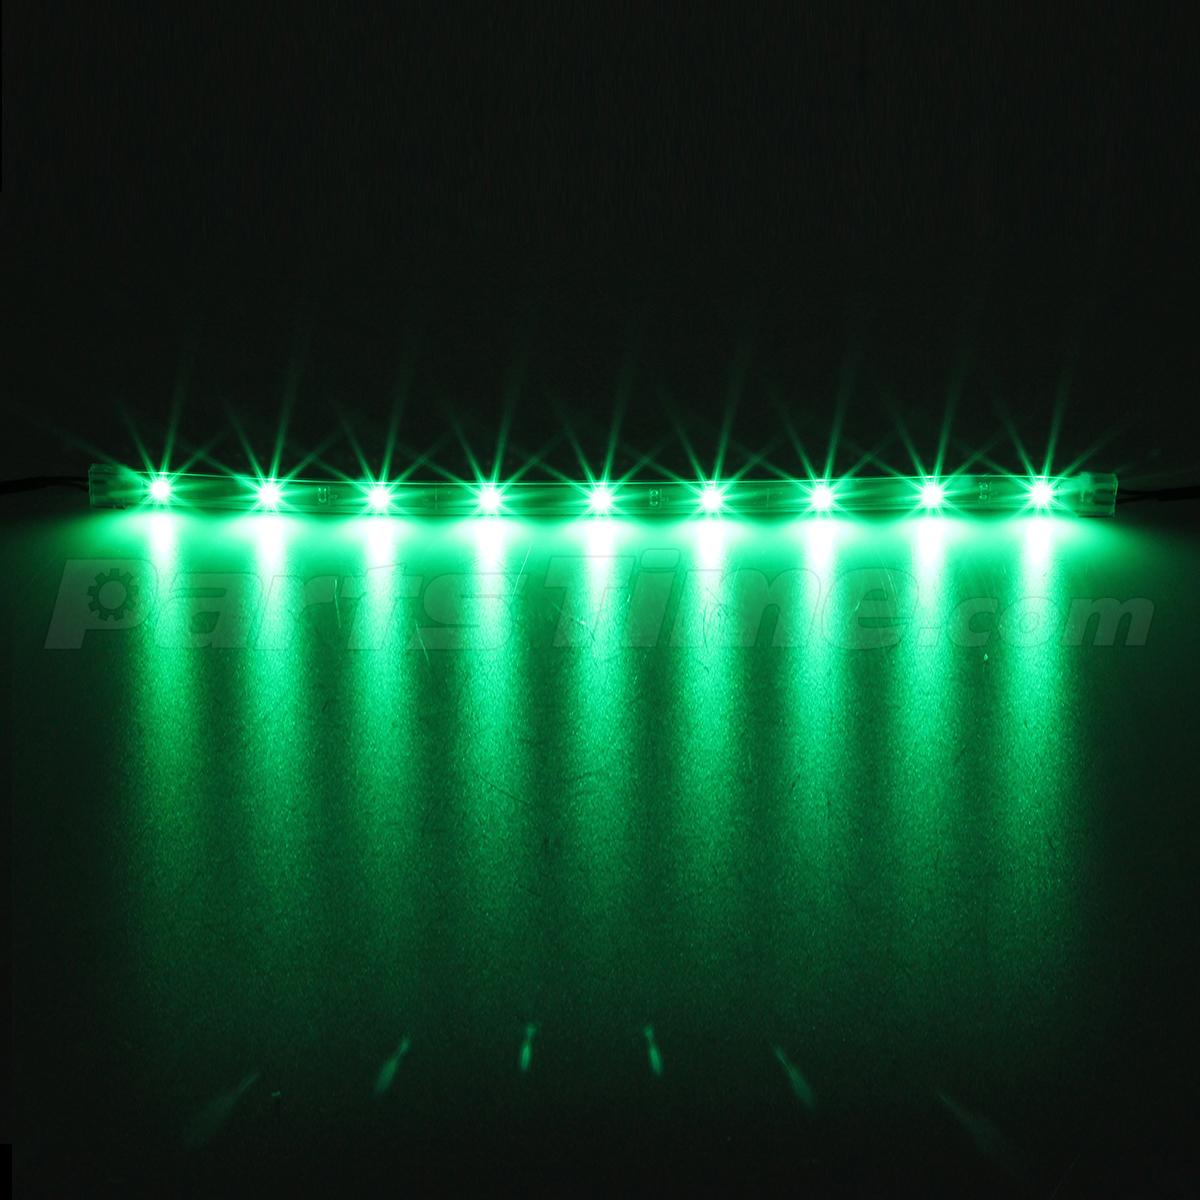 14pc Green Car Truck Underglow Under Body Neon Accent Glow Led Lights 12 Strip Ebay